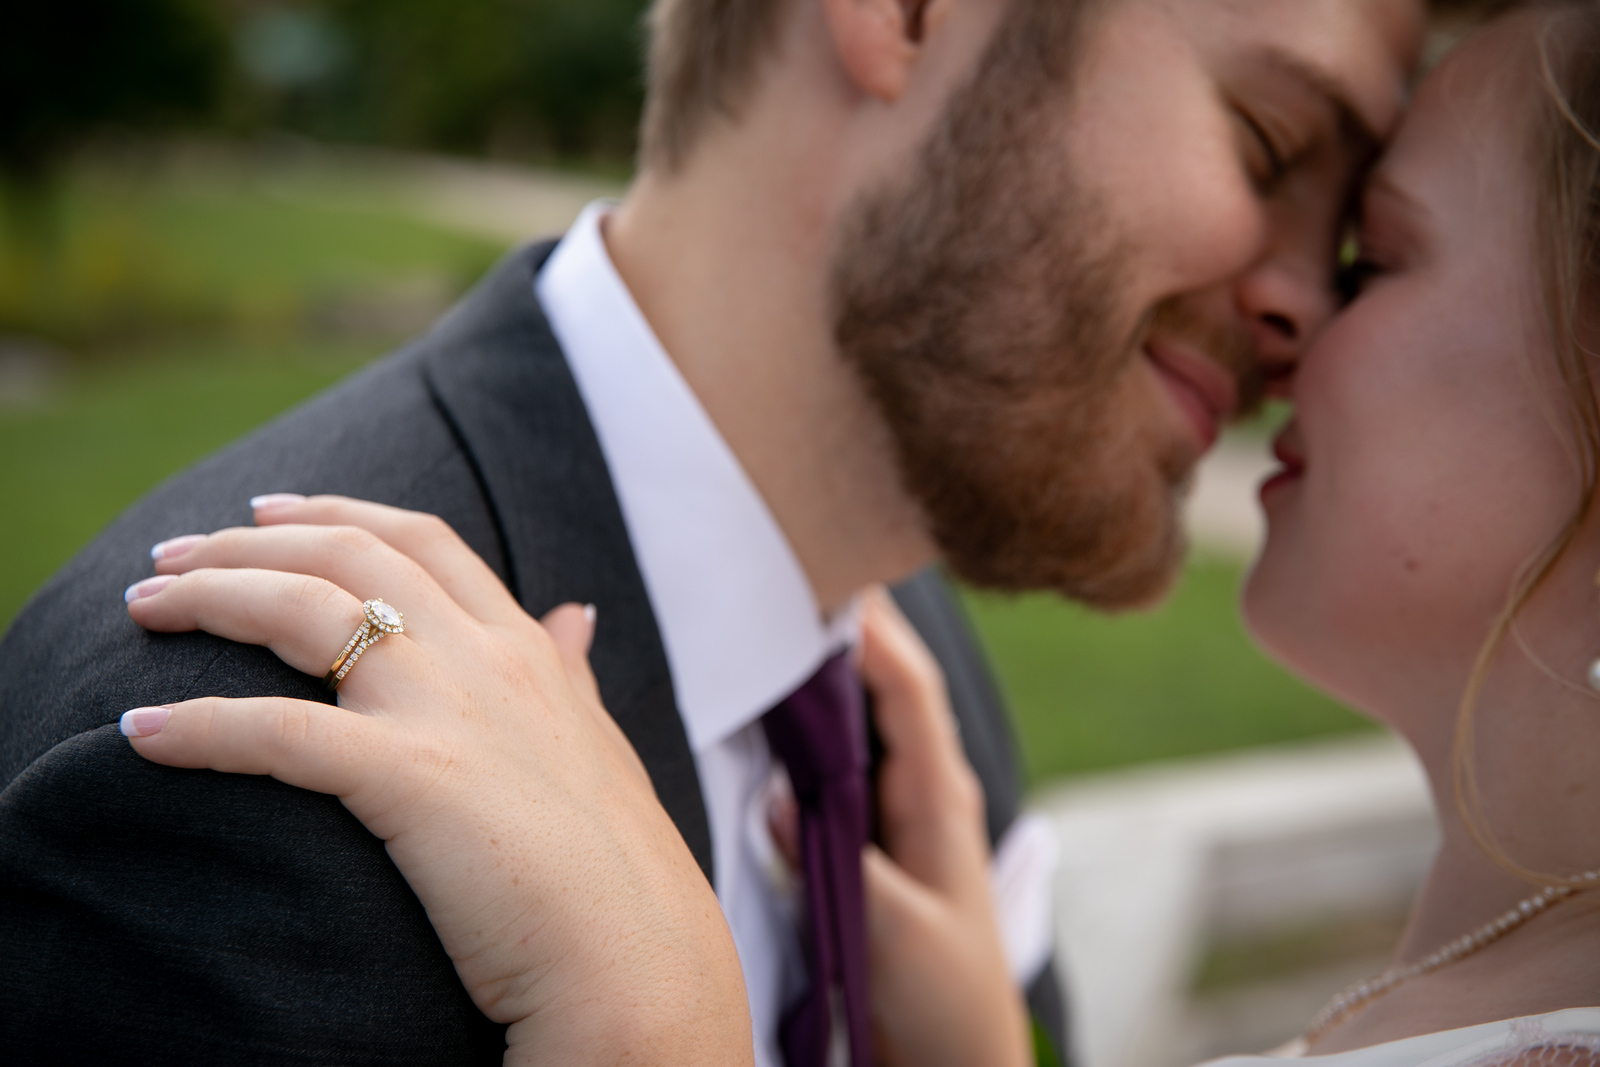 A close up photograph of a bride's engagement ring with the bride and groom holding each other in the blurred background